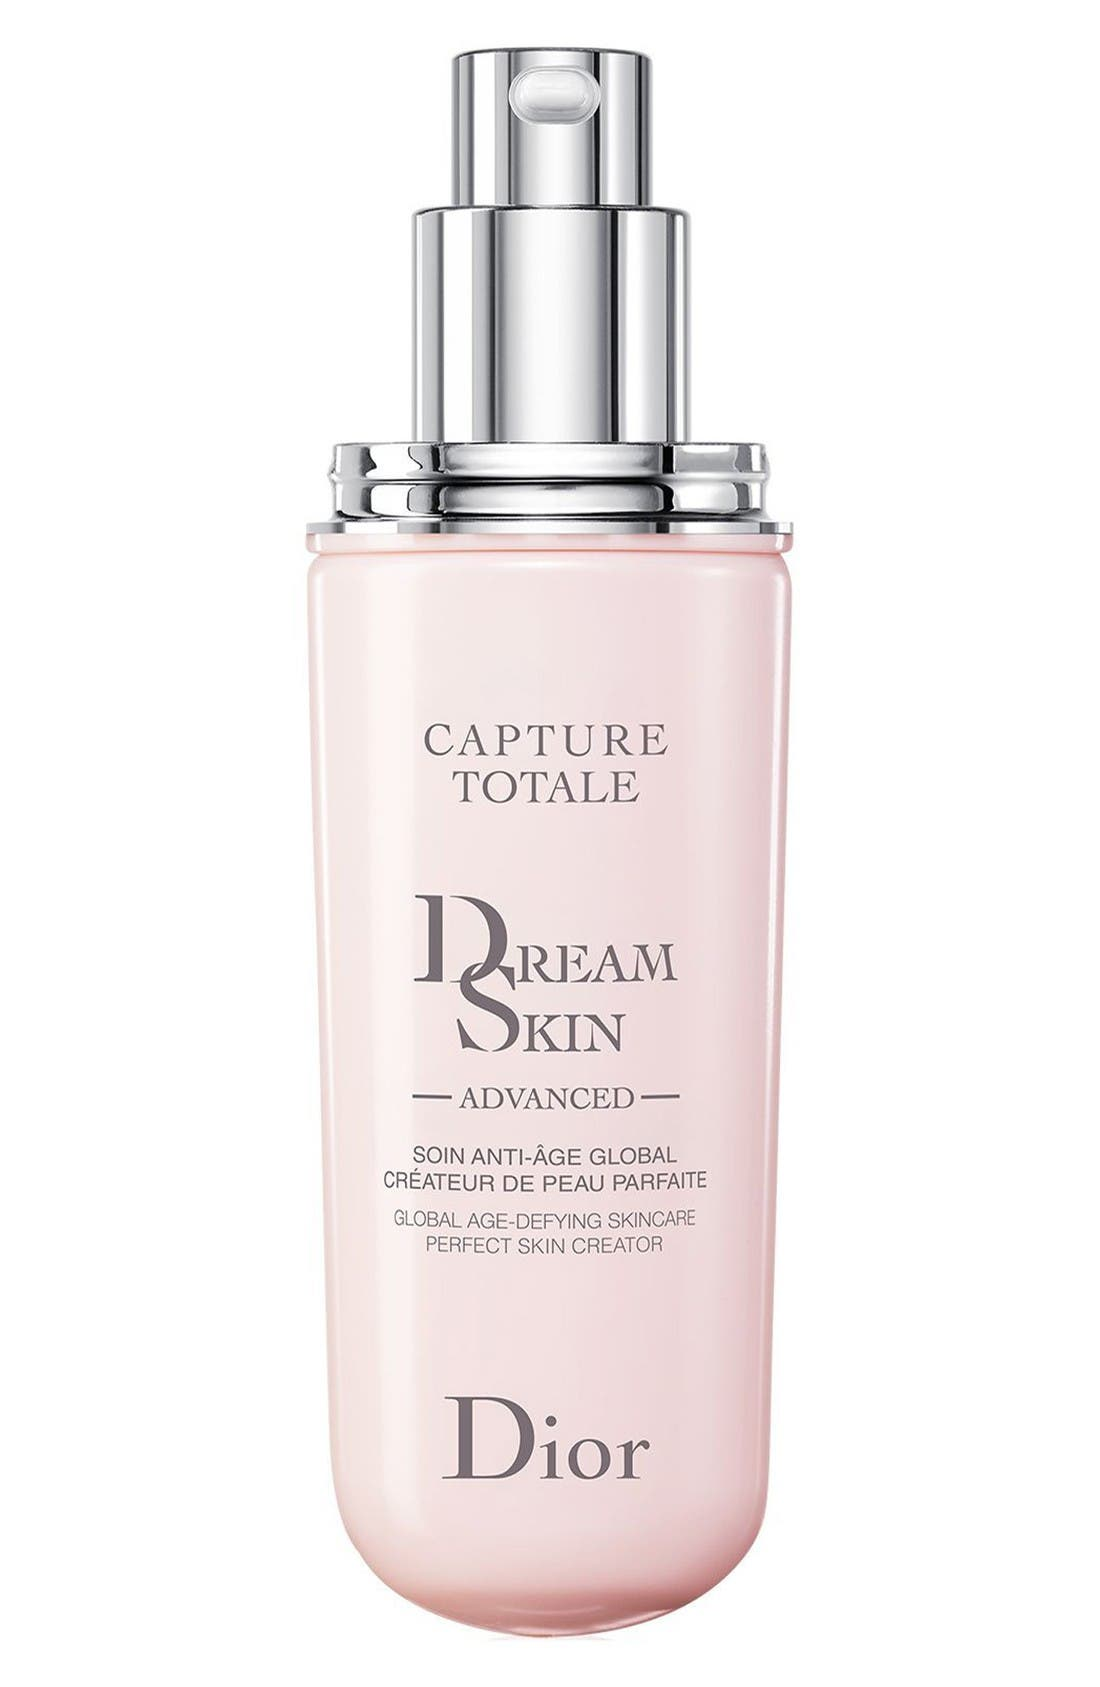 Alternate Image 1 Selected - Dior Capture Totale DreamSkin Advanced Perfect Skin Creator Refill